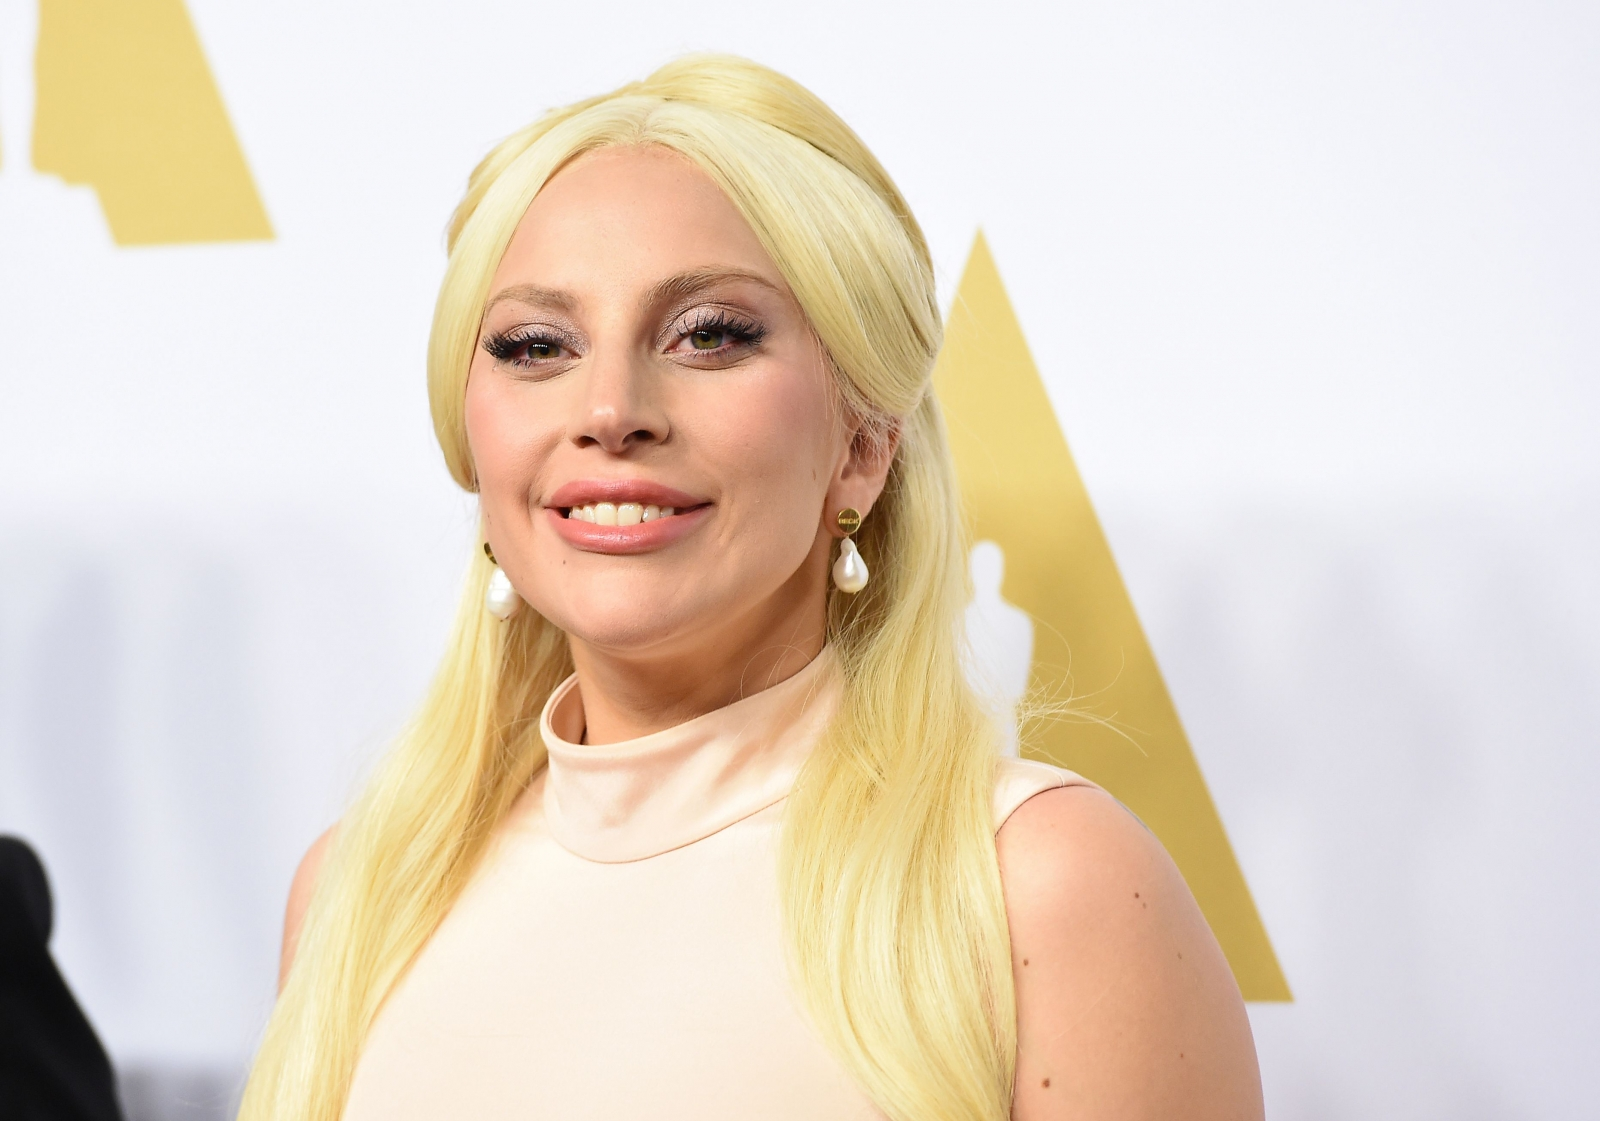 Lady Gaga is rumoured to perform comeback single at the MTV VMAs 2016 ...